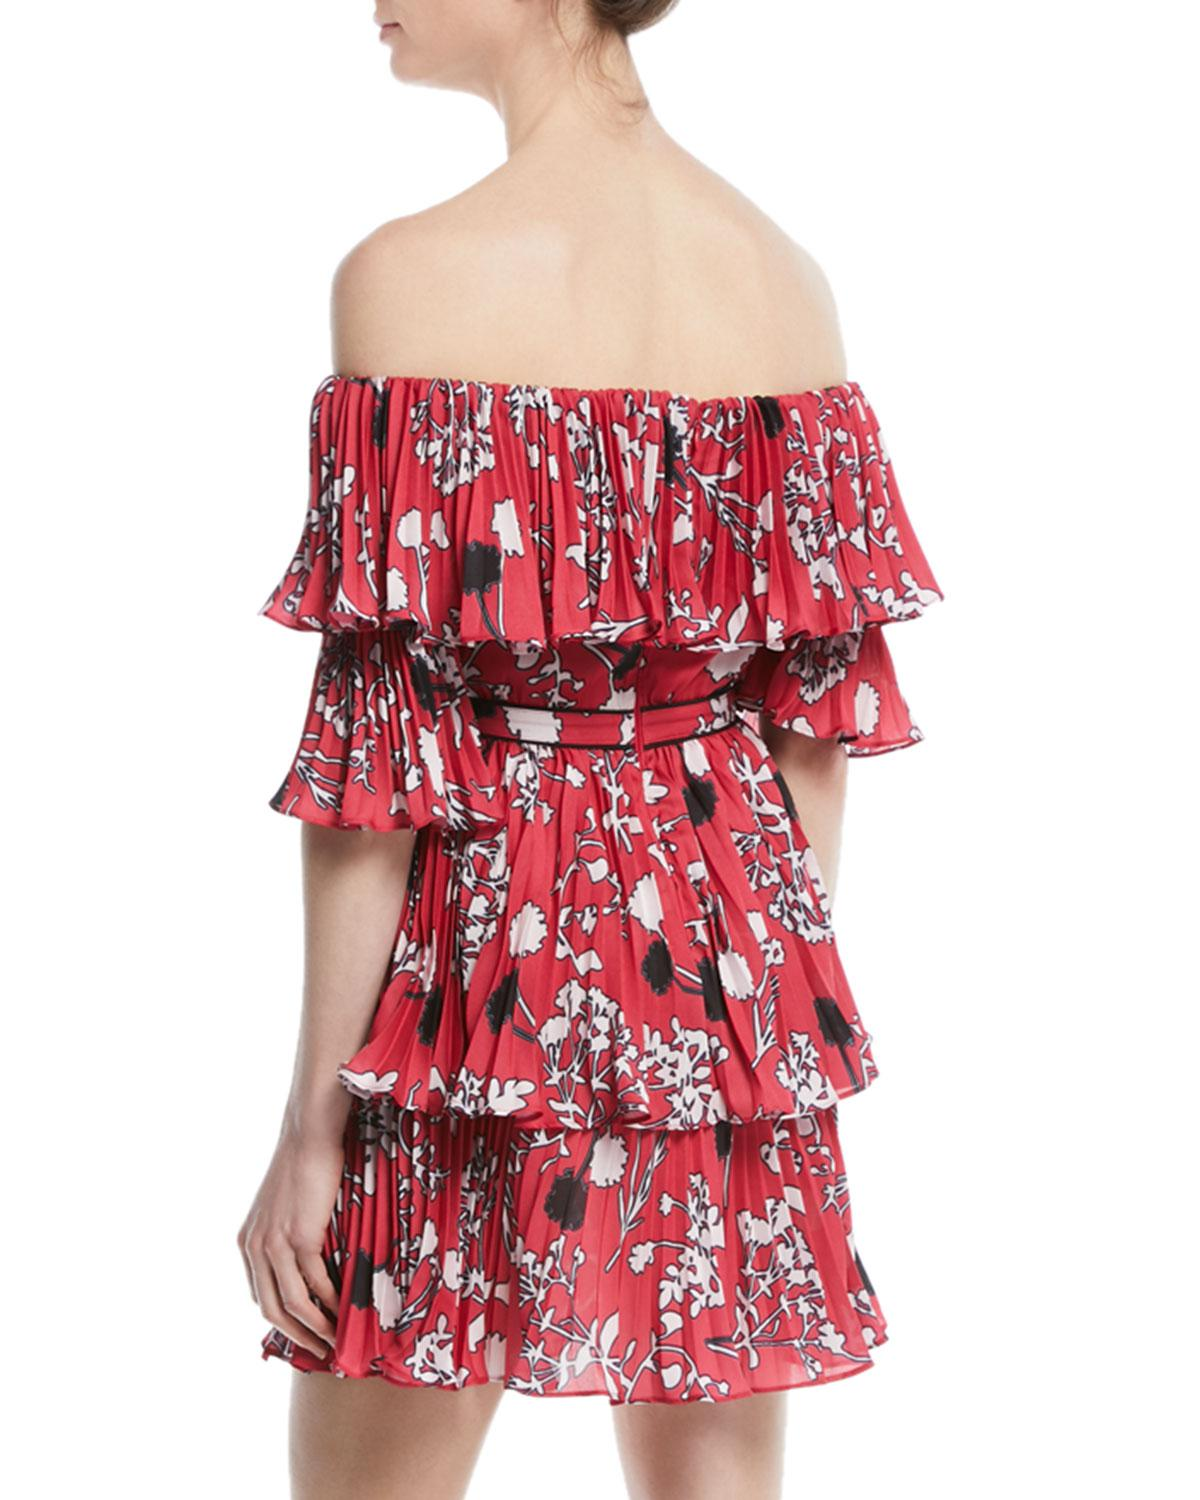 New Styles Online Pleated off-the-shoulder floral-print mini dress Self Portrait Buy Cheap New Styles ONfNFp1